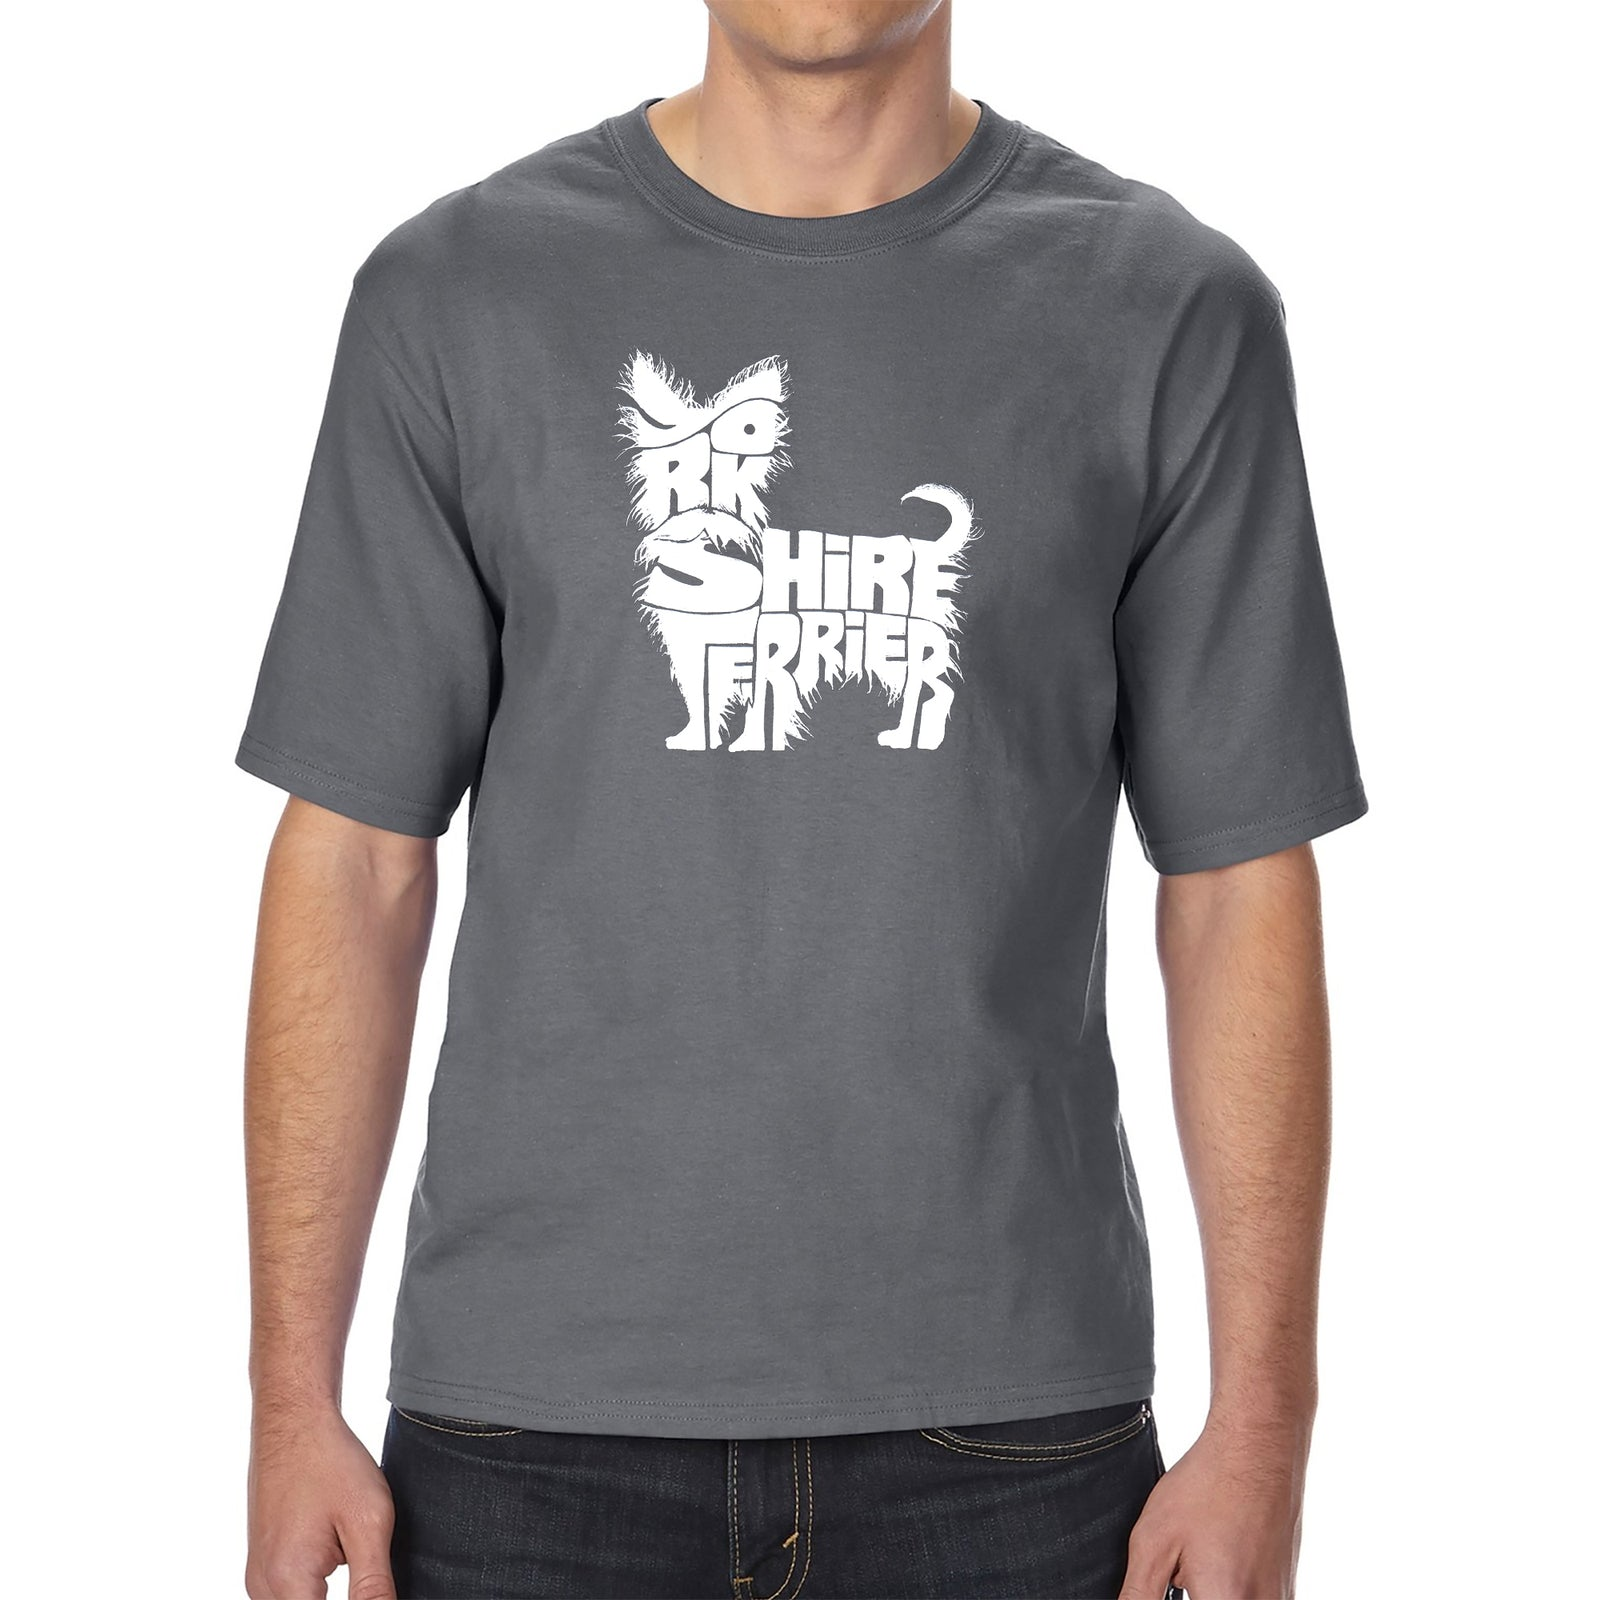 Men's Tall and Long Word Art T-shirt - Yorkie